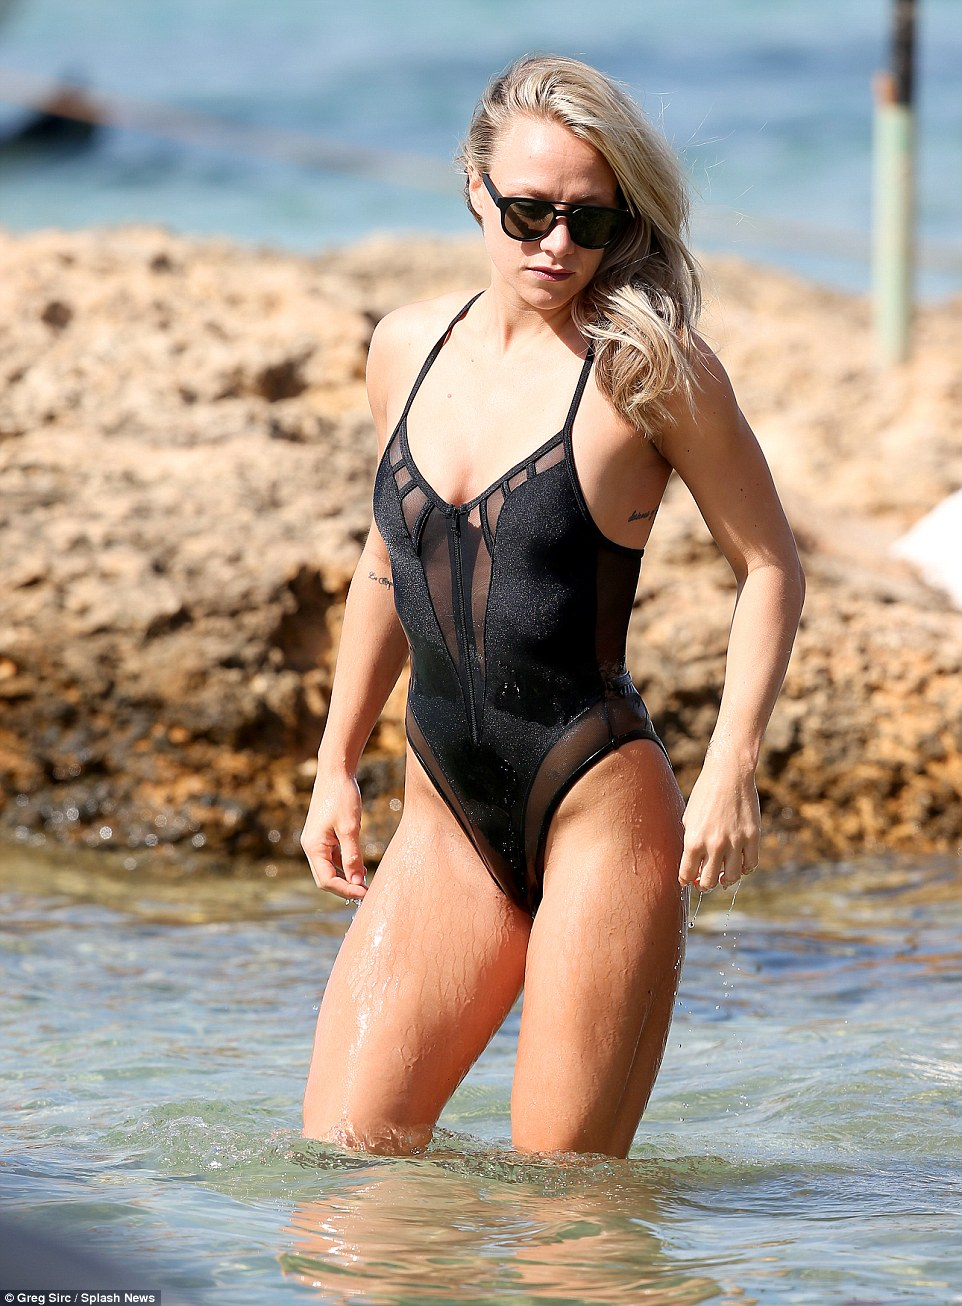 Beauty: The stunner cooled off with a plunge in the water, shielding her eyes from the sun with some funky shades